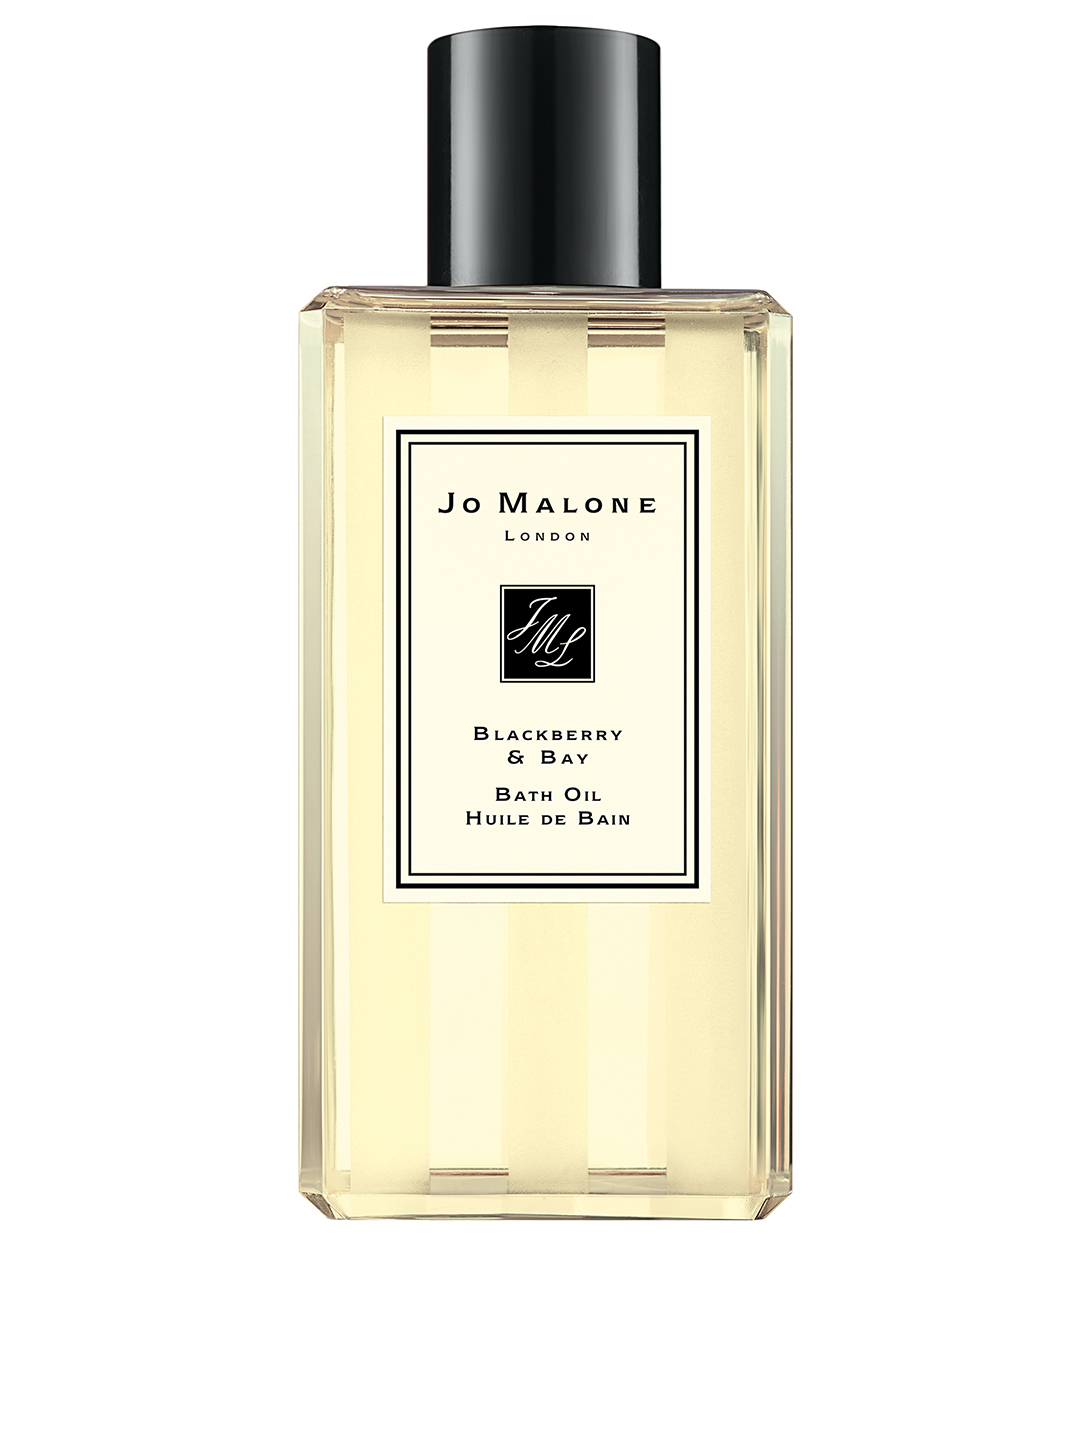 JO MALONE LONDON Blackberry & Bay Bath Oil Beauty